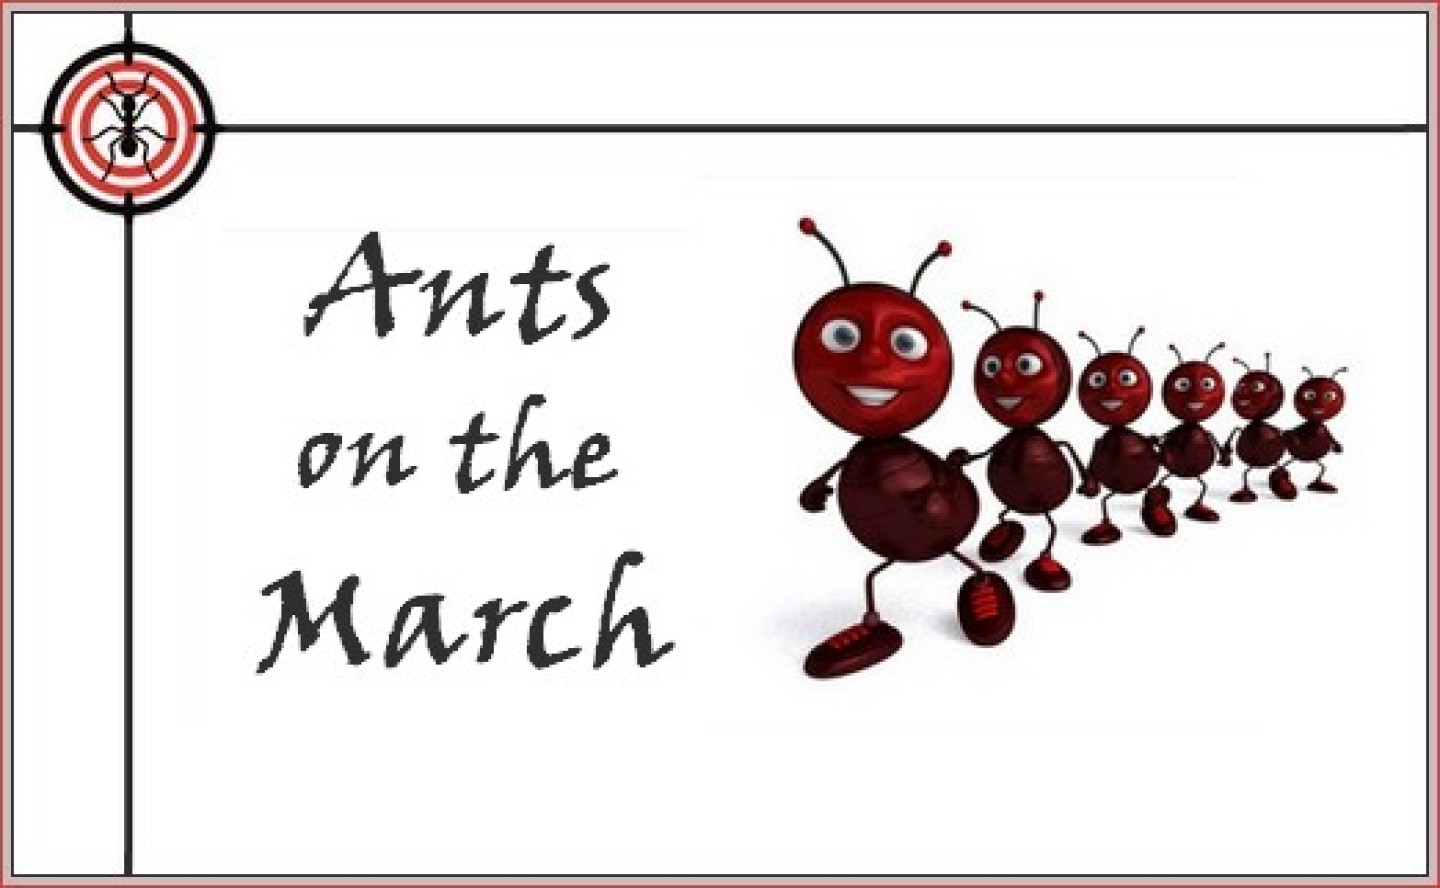 ants on the march